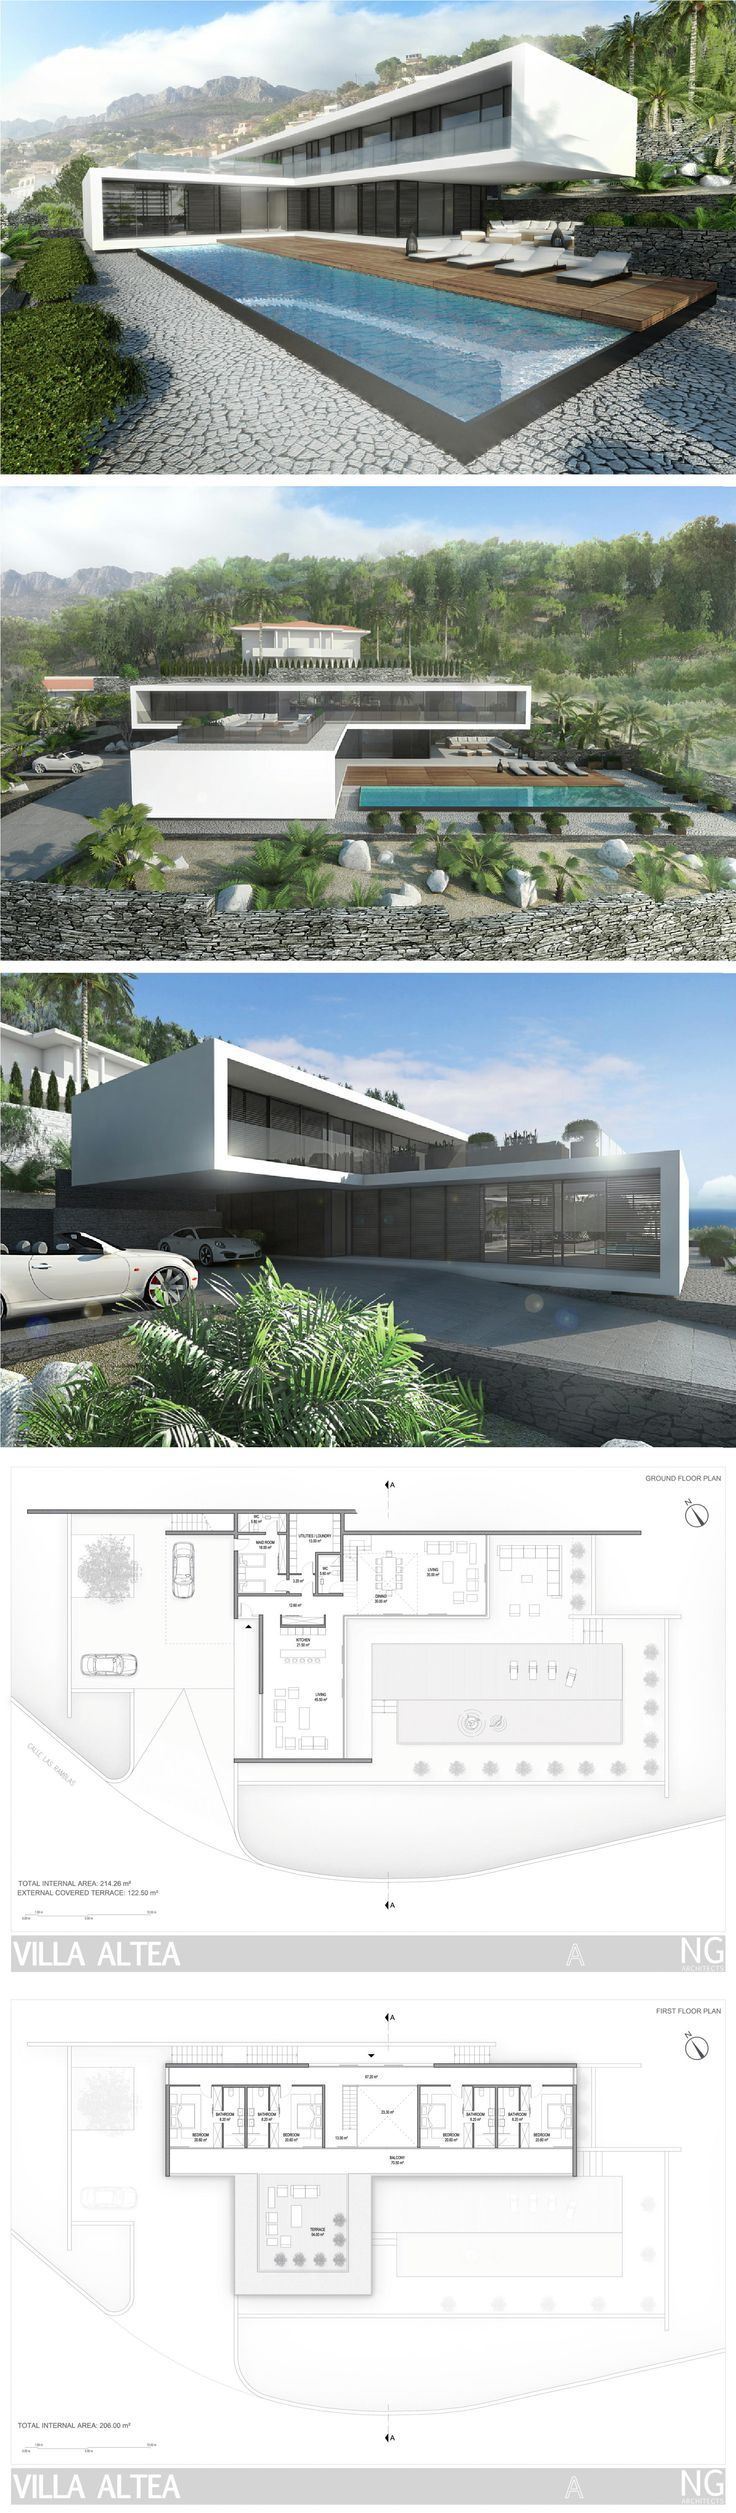 Modern villa in Spain by NG architects http://www.ngarchitects.lt